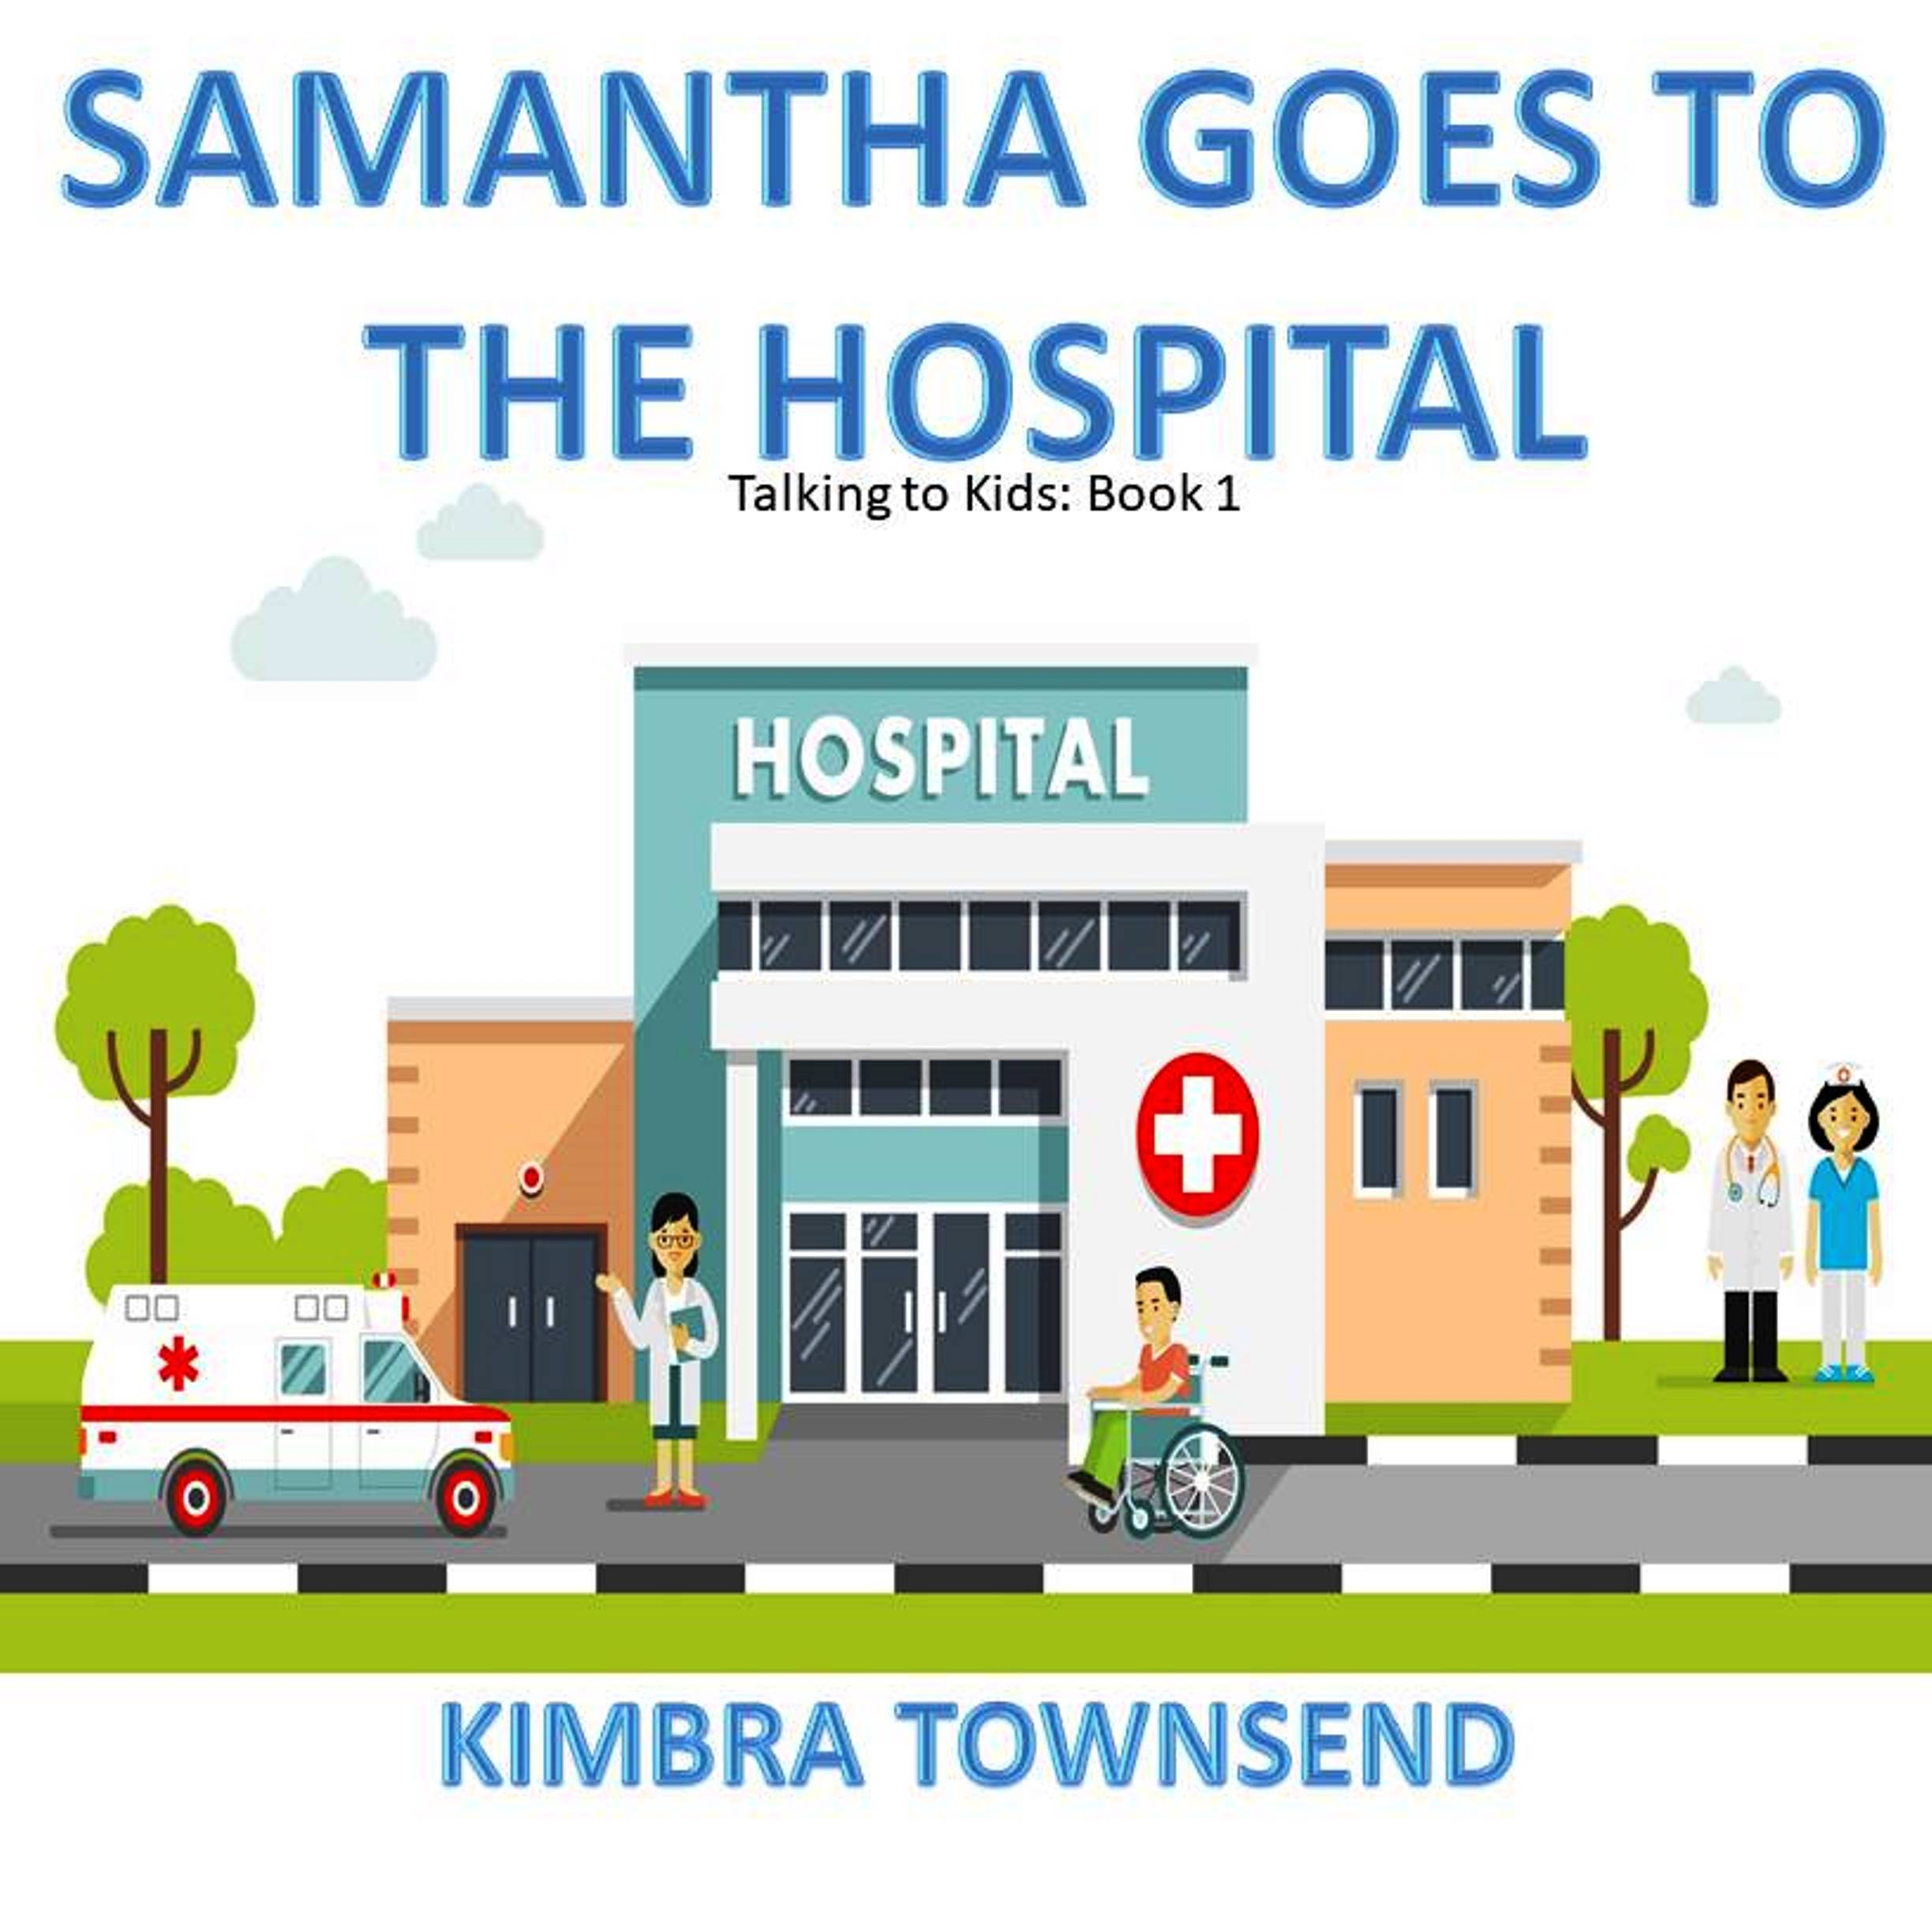 Samantha has Surgery Cover ebook.jpg